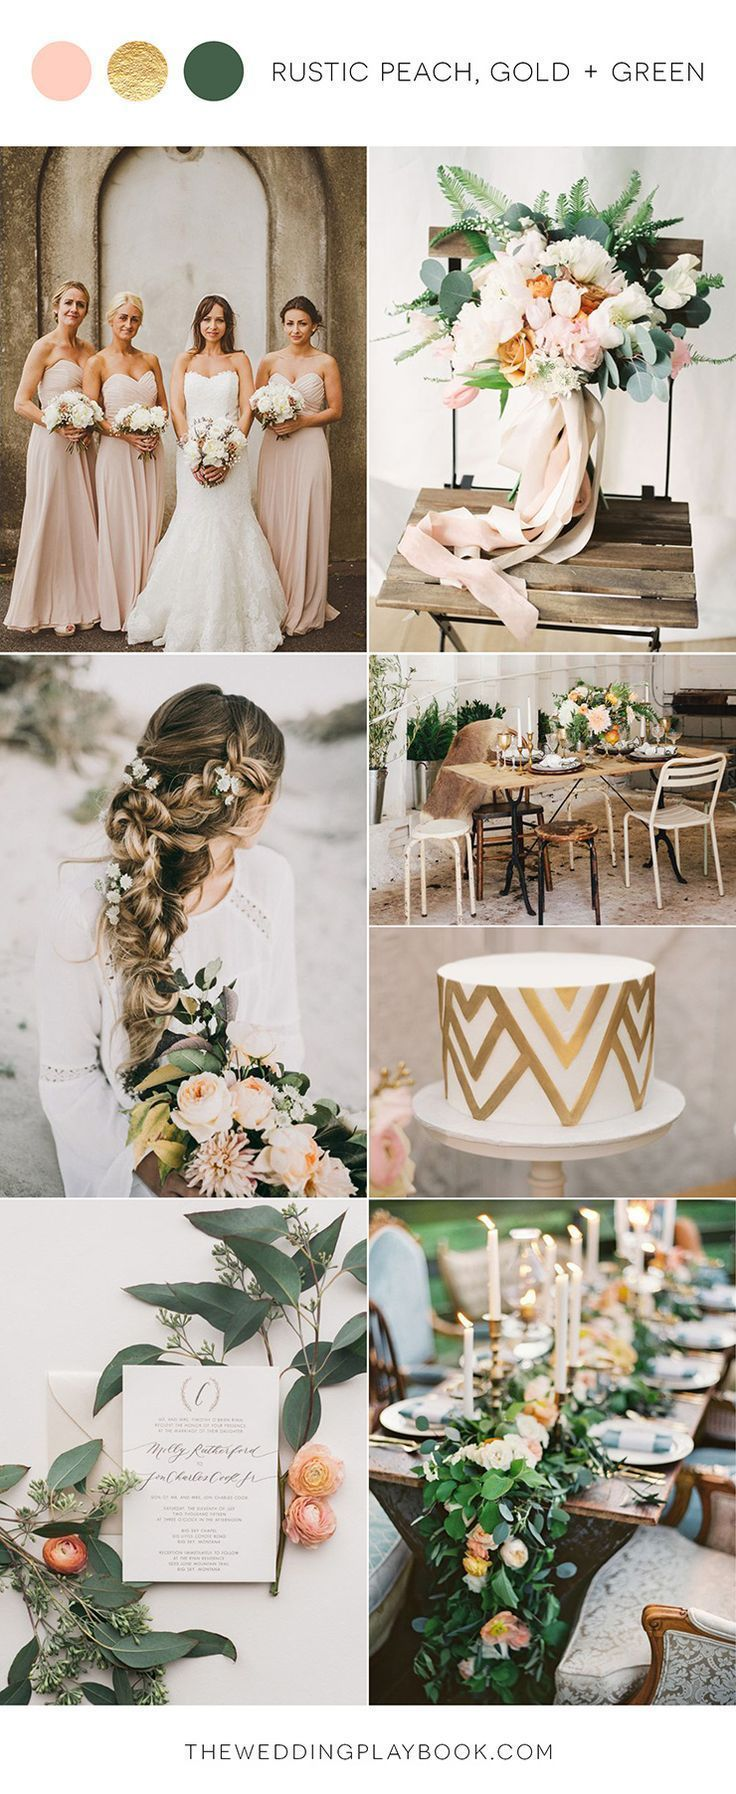 Rustic Peach, Gold and Green Wedding Inspiration